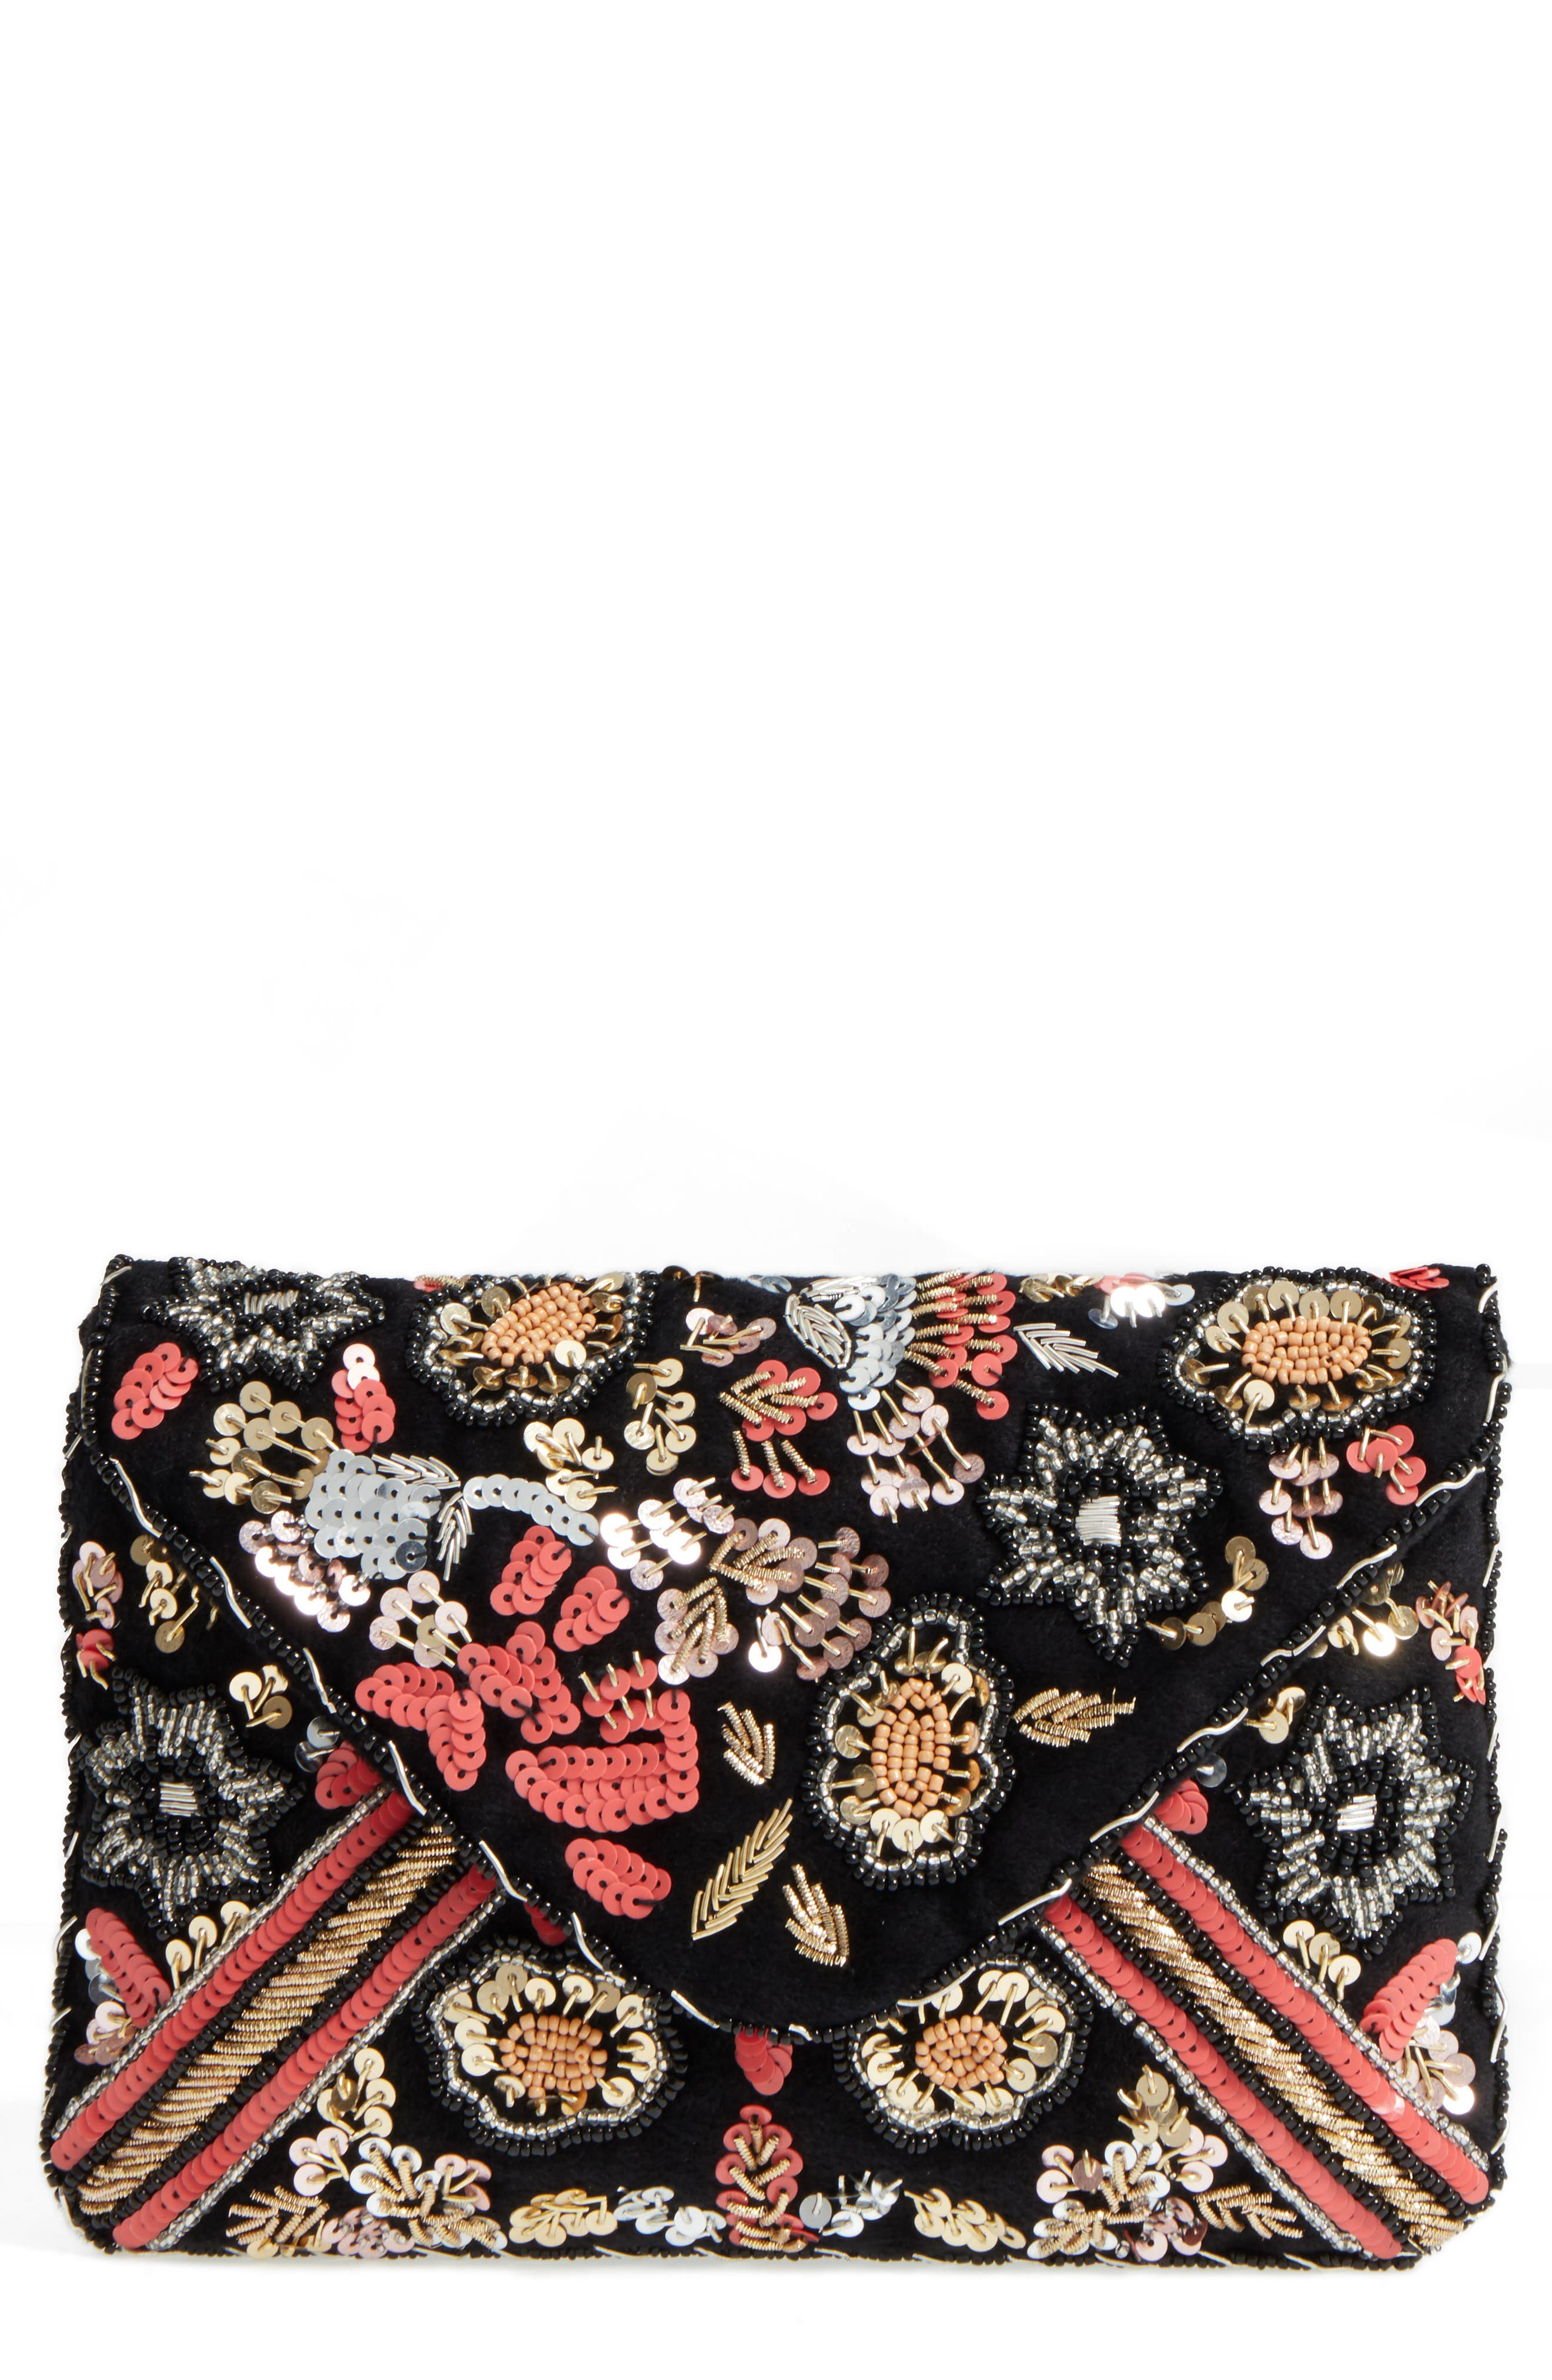 Sole Society Floral Sequin Clutch